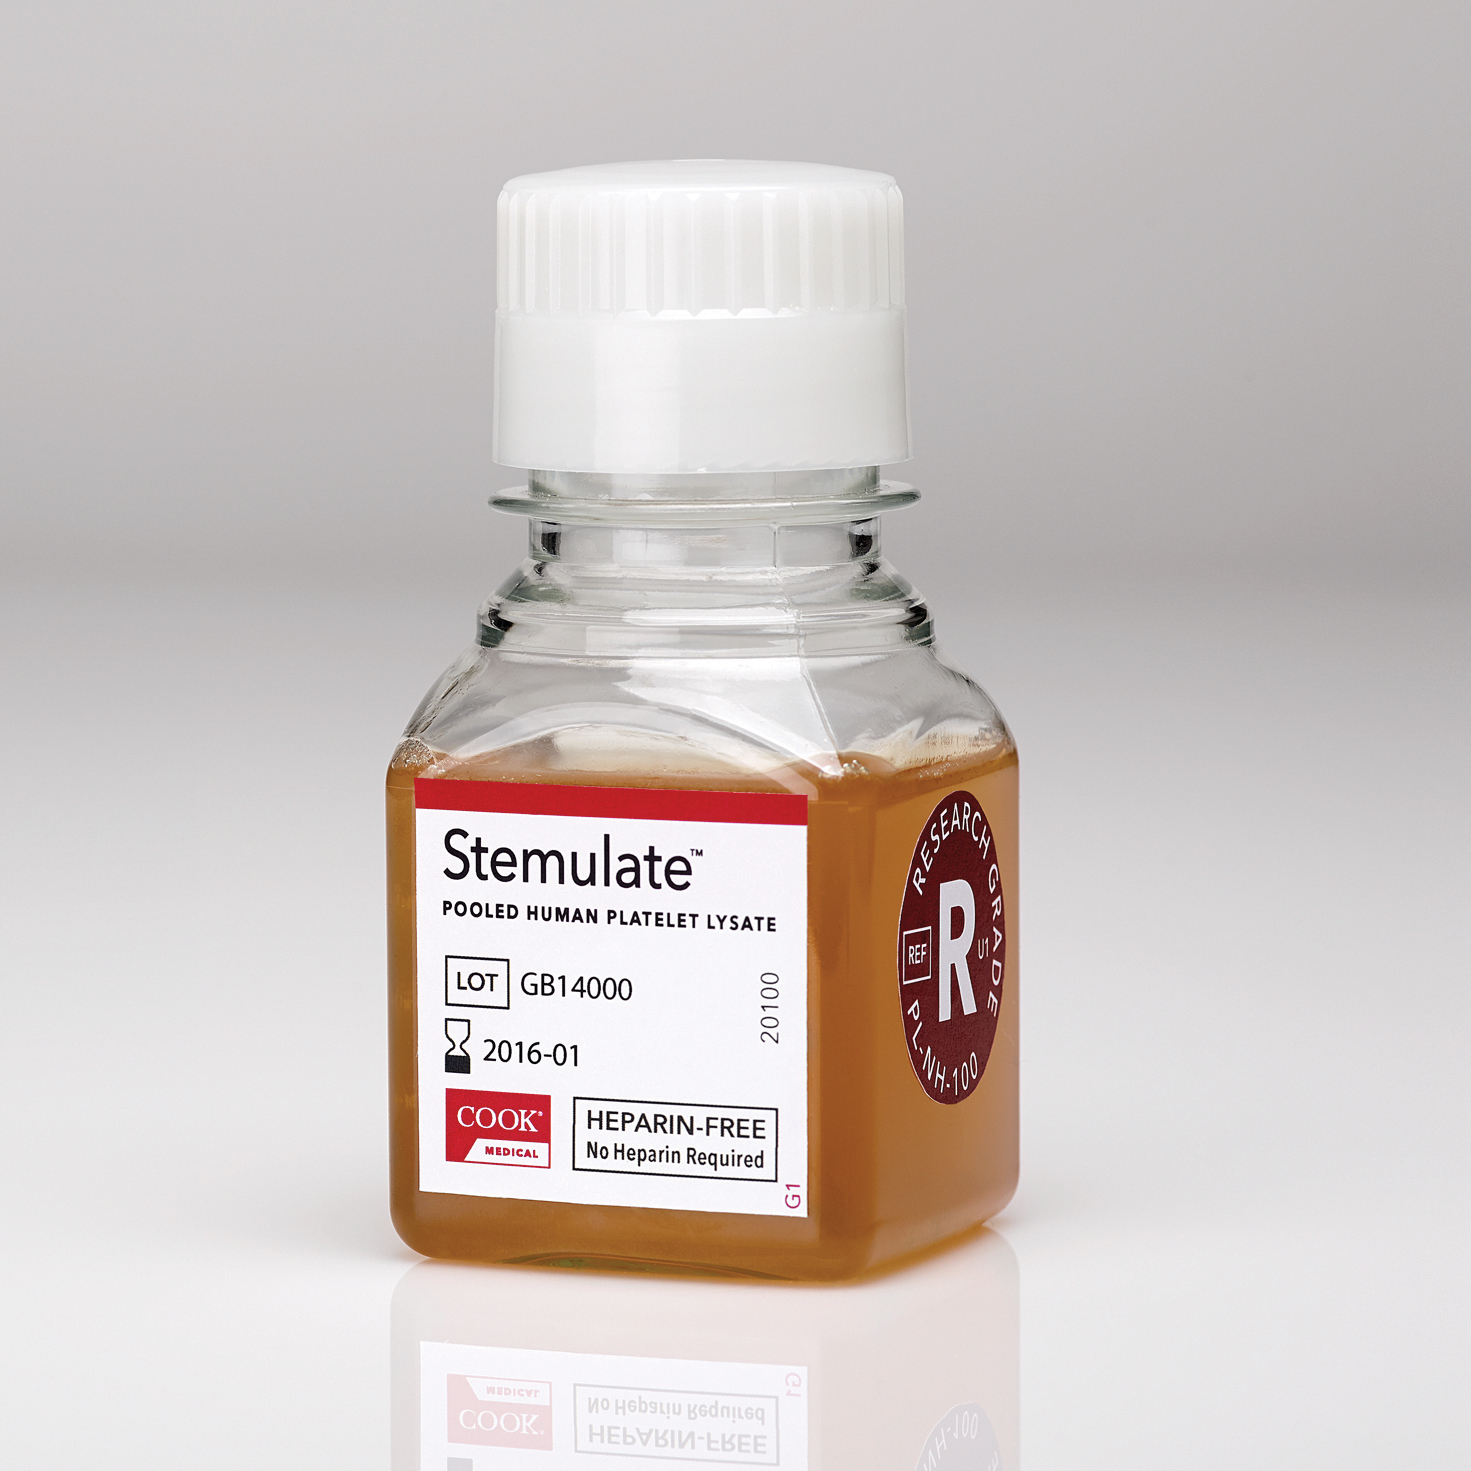 Stemulate(TM) Pooled Human Platelet Lysate cell culture media supplement (Photo: Business Wire)